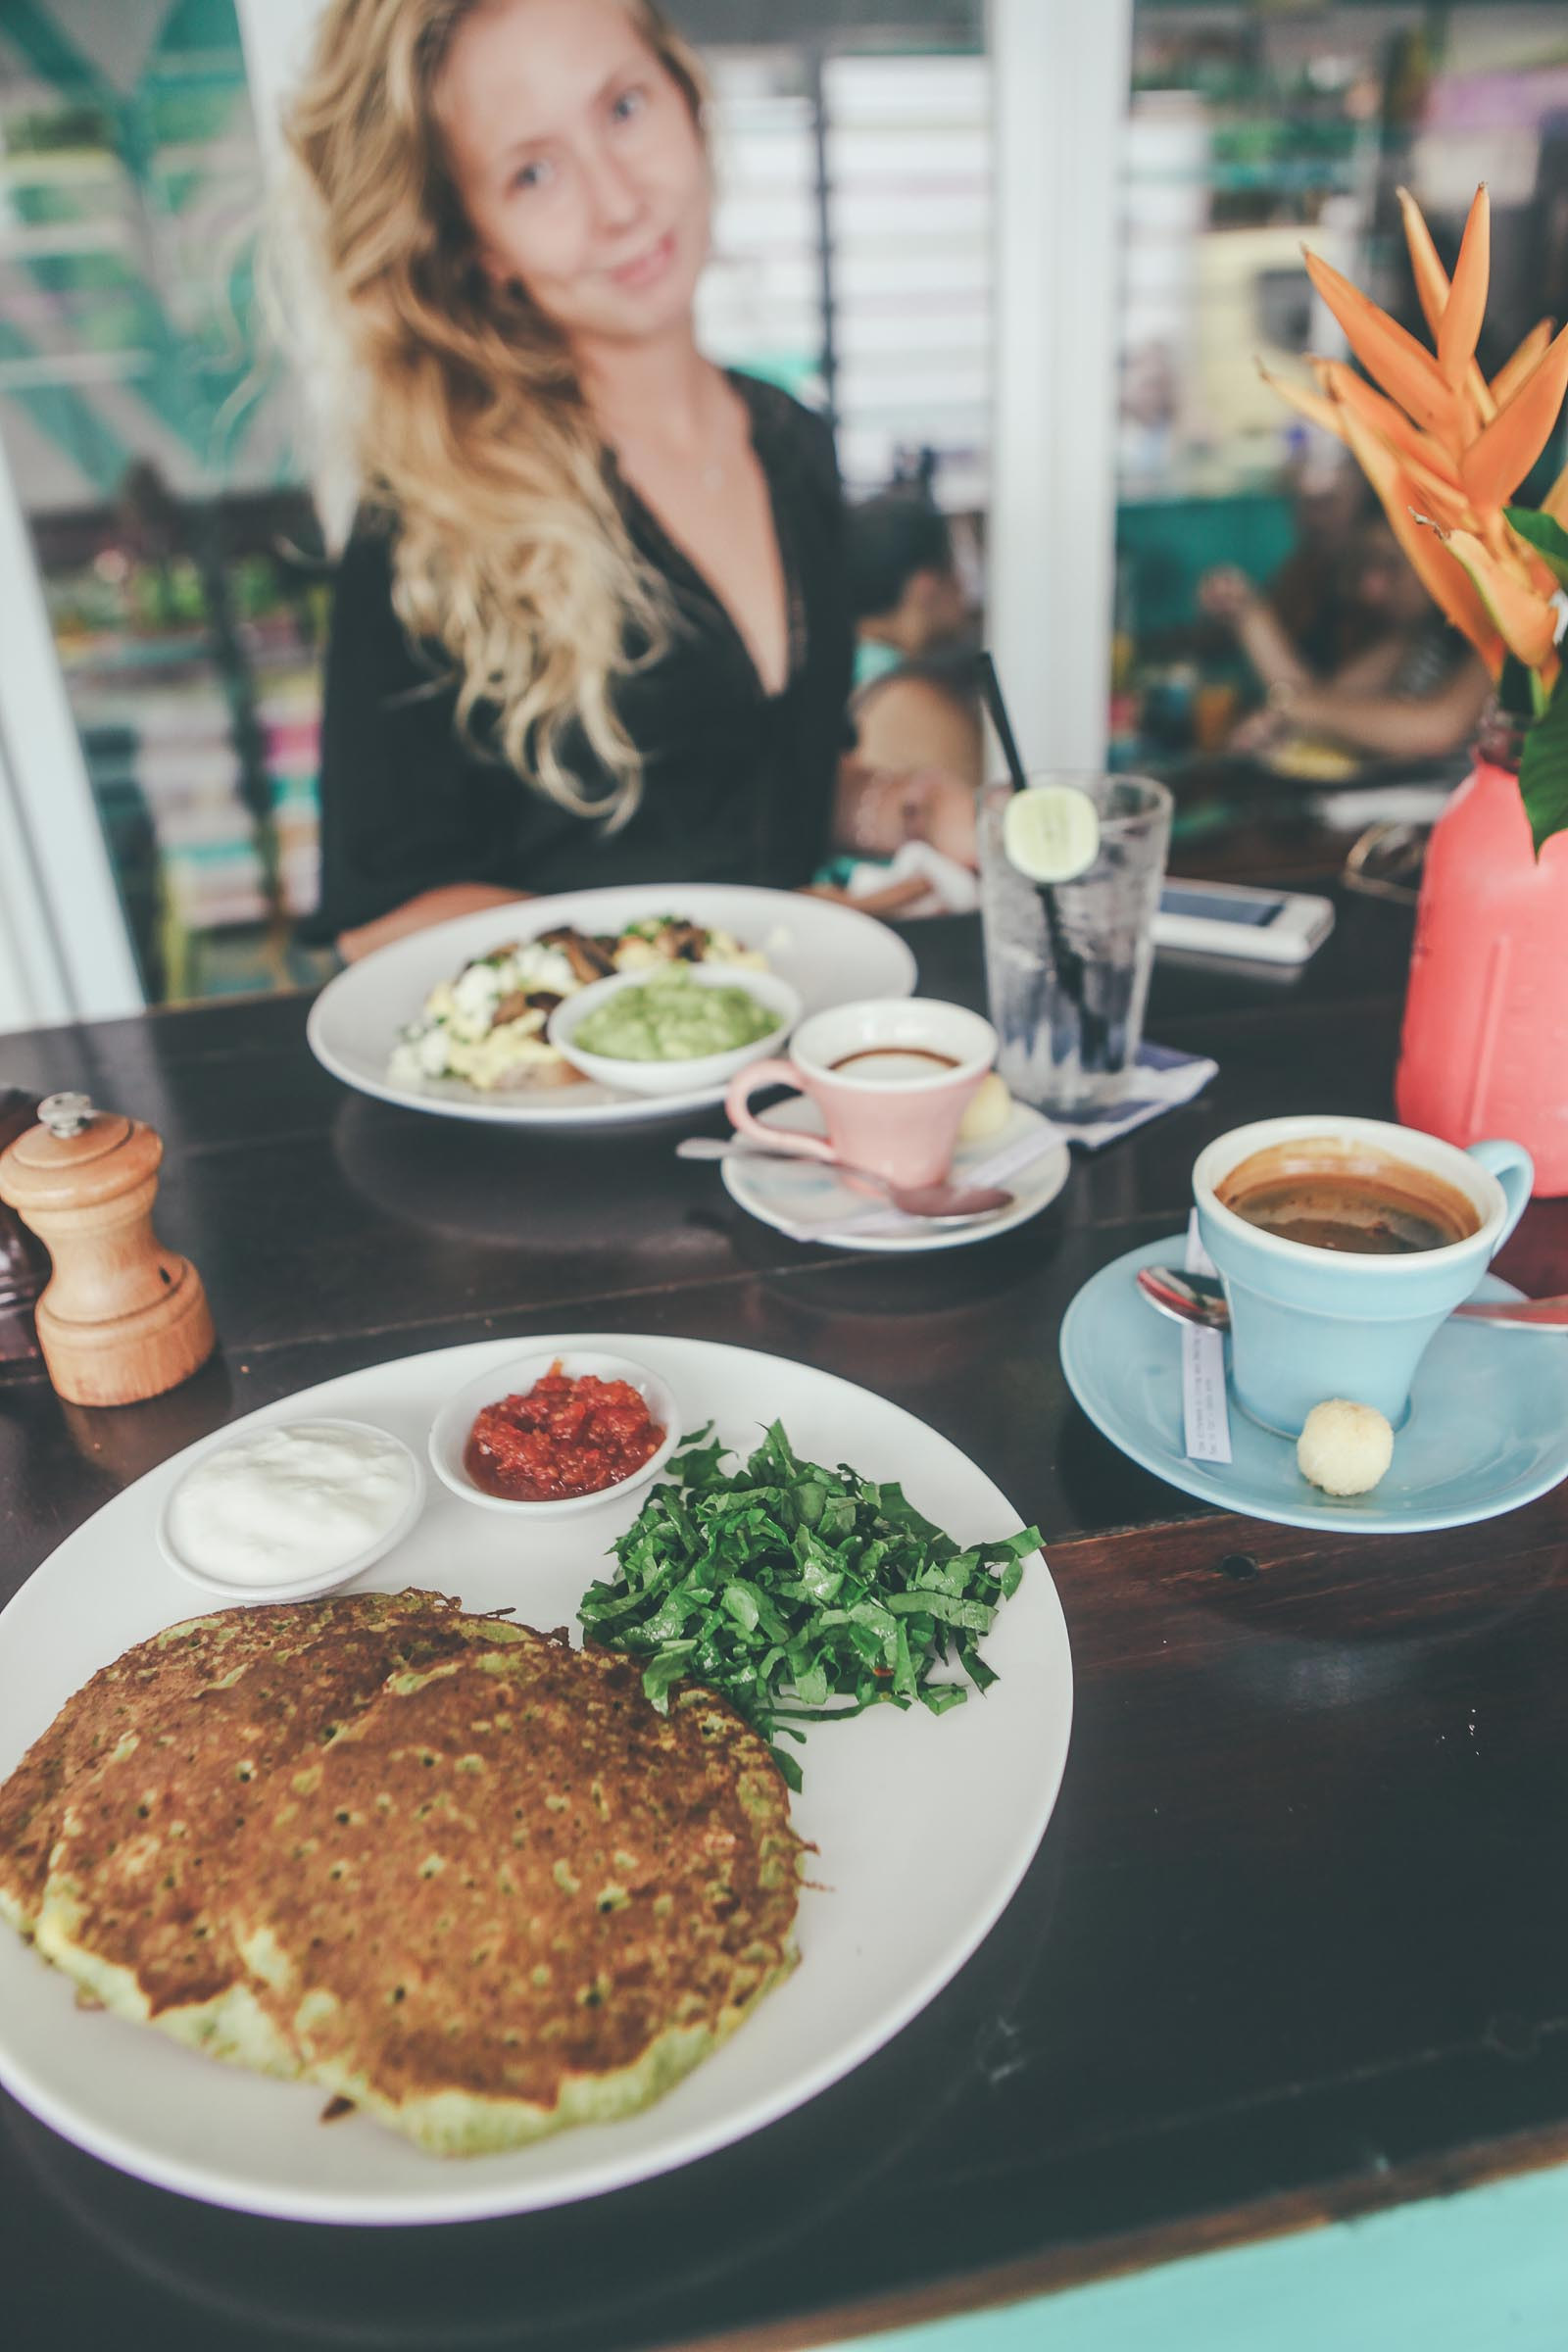 Bali-Travel-Blog-Seminyak-Restaurant-Bar-Breakfast-Surf-Uluwatu-The-Colonial-Hotel-Sea-Circus-2316